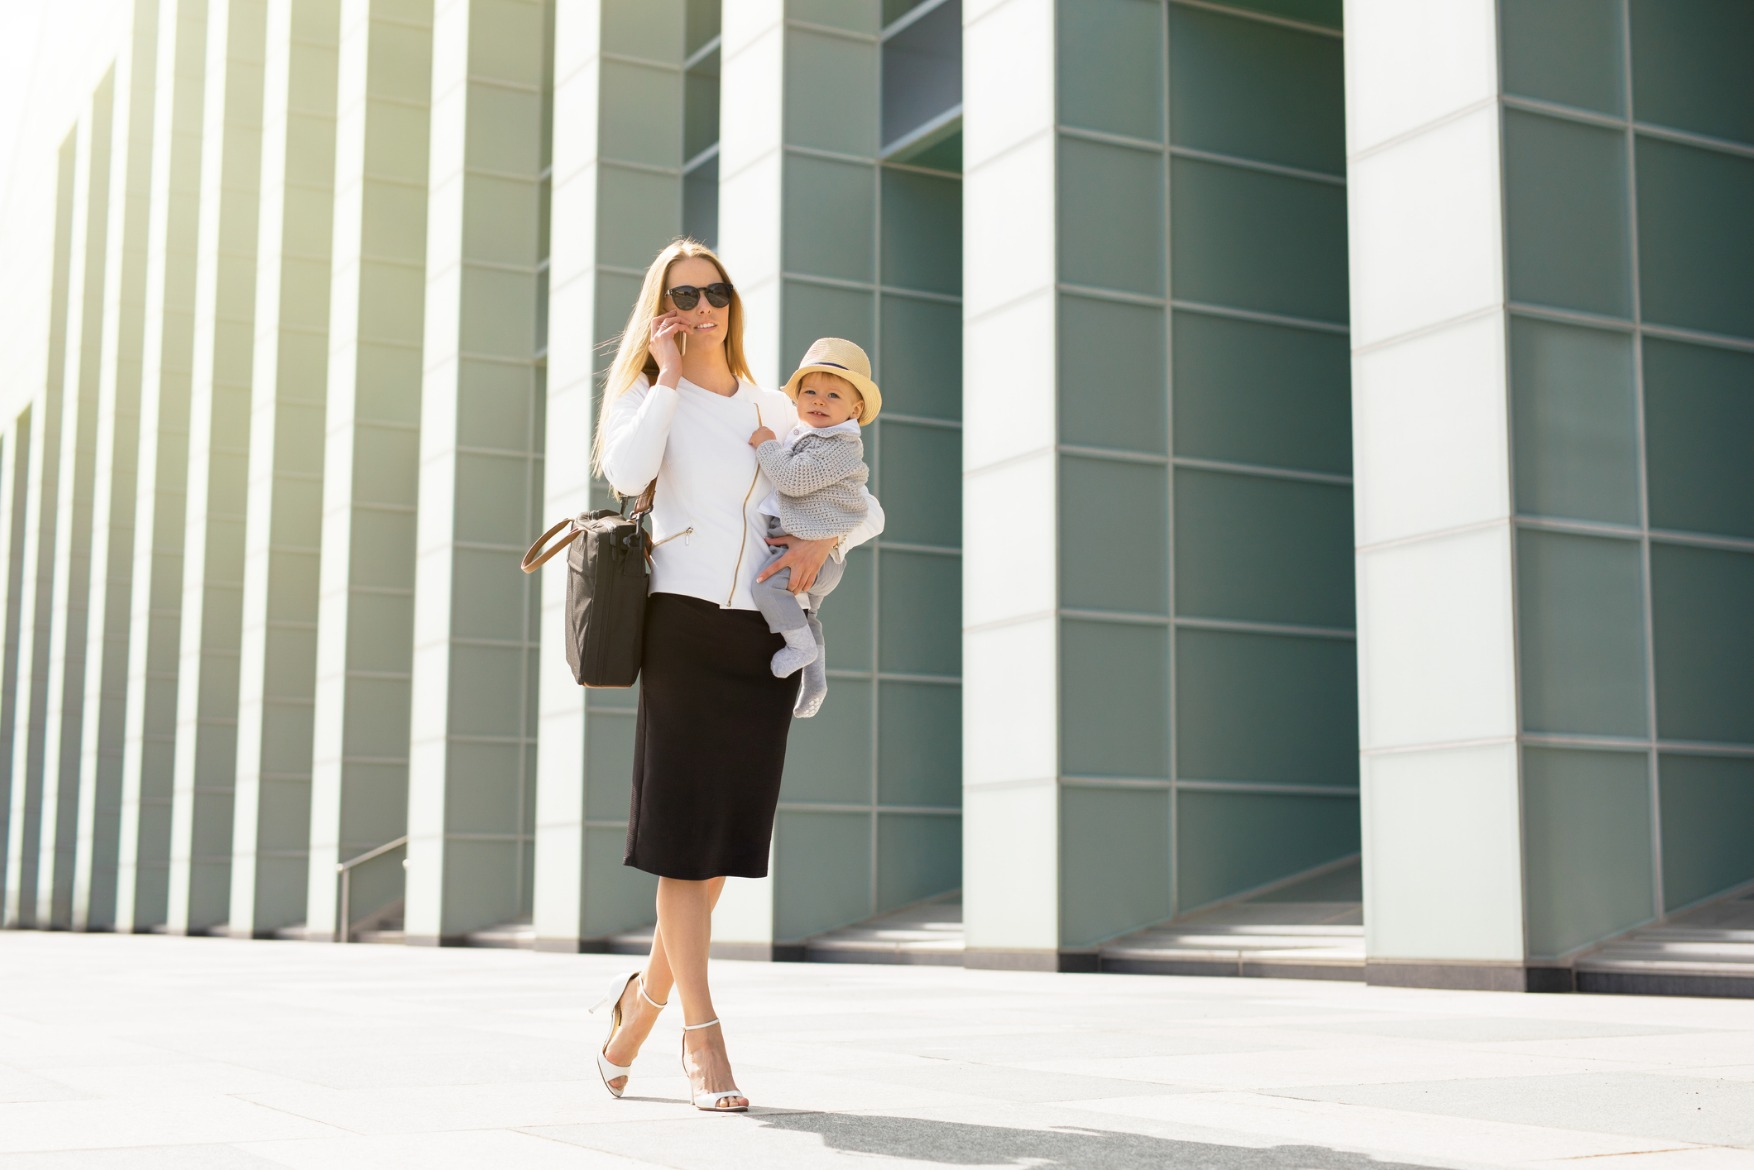 Mother in business clothes, carrying baby.